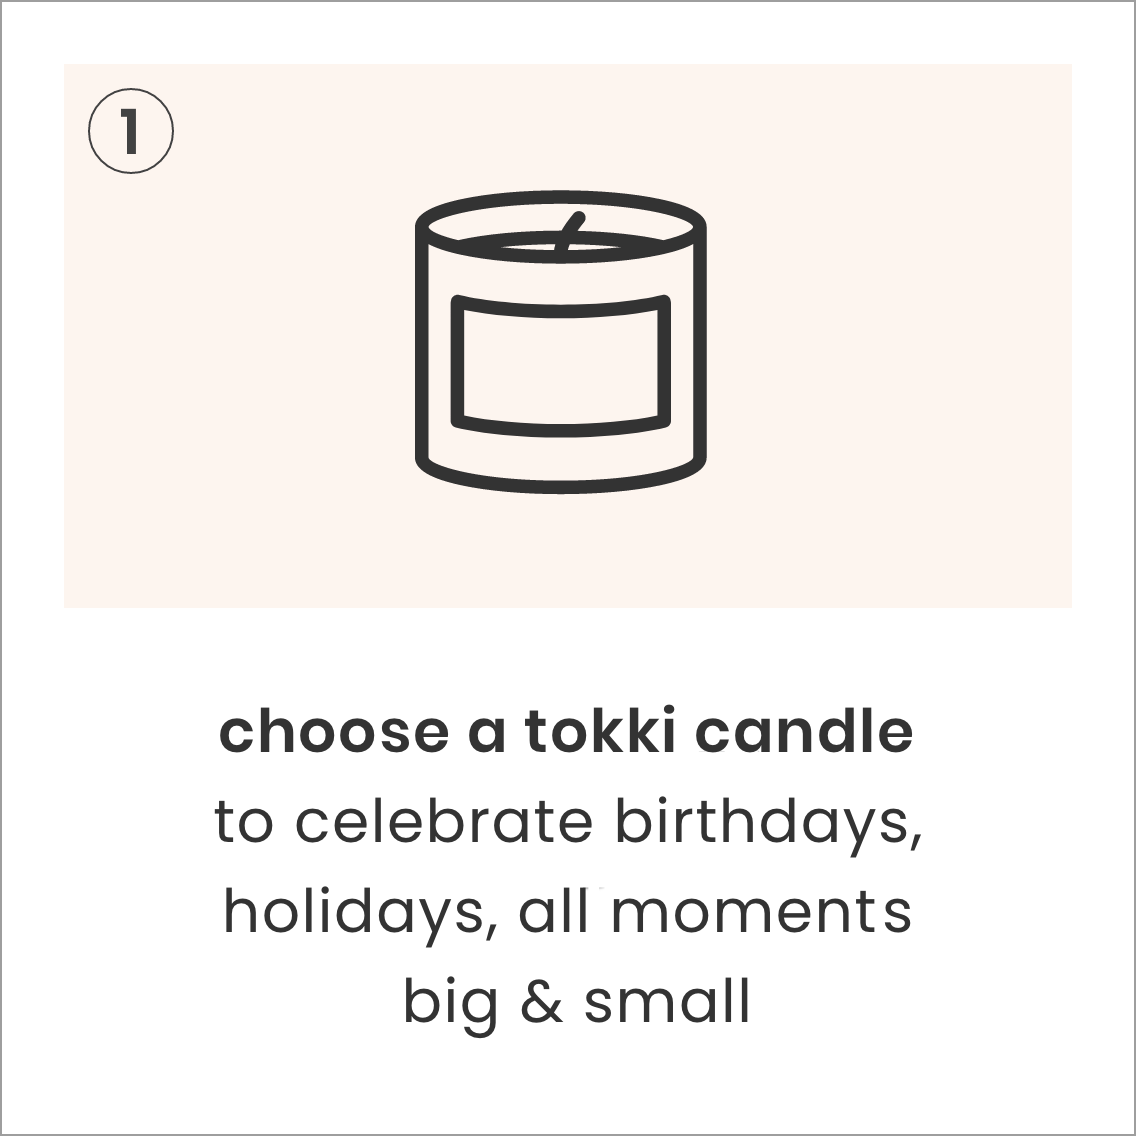 choose a tokki candle